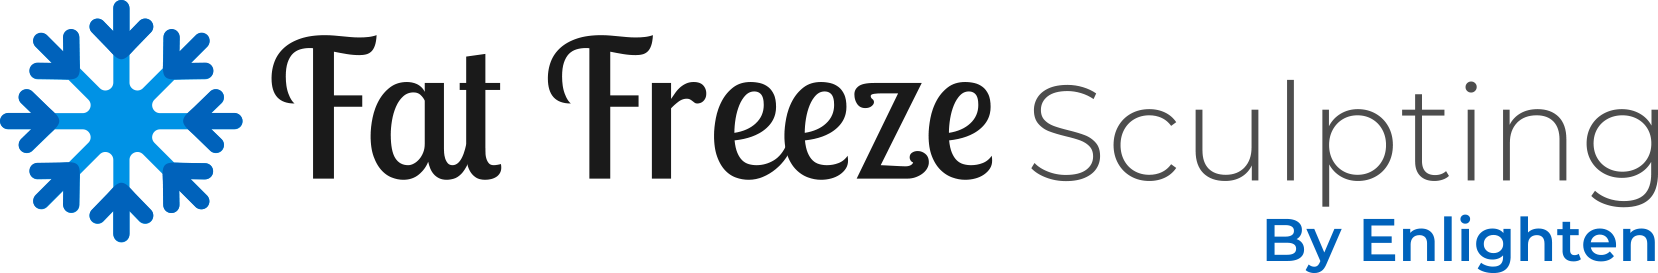 Fat Freeze Sculpting logo